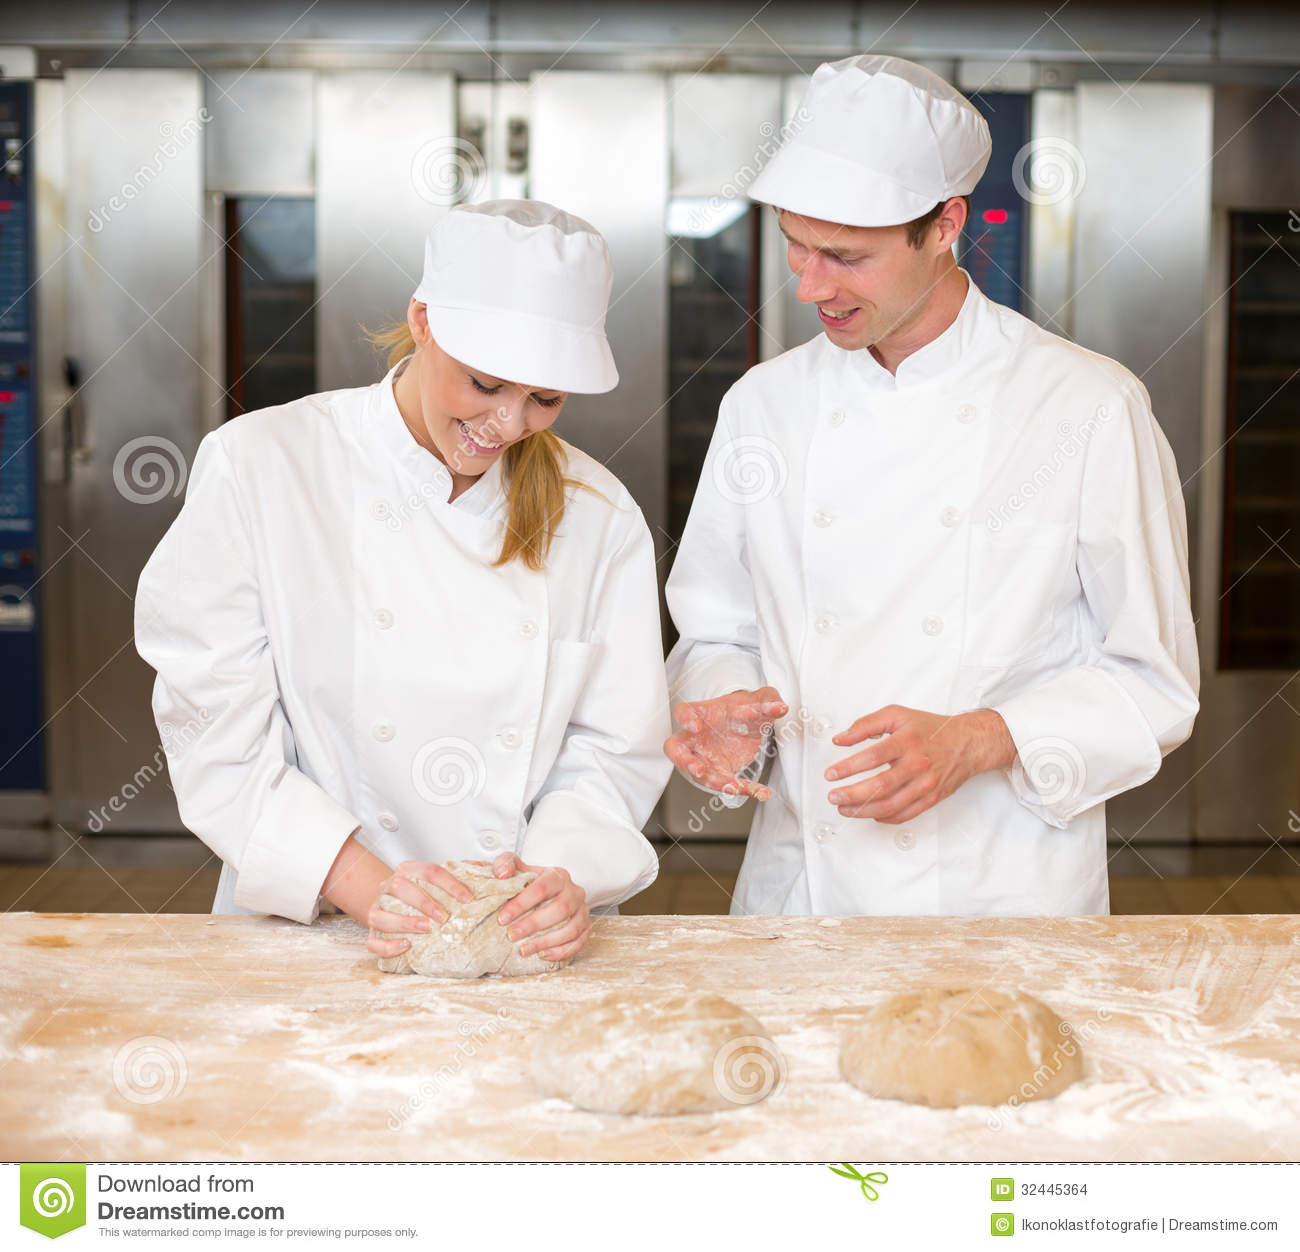 Instructor And Baker Apprentice Kneading Bread Dough Stock Photo - Image: 32445364